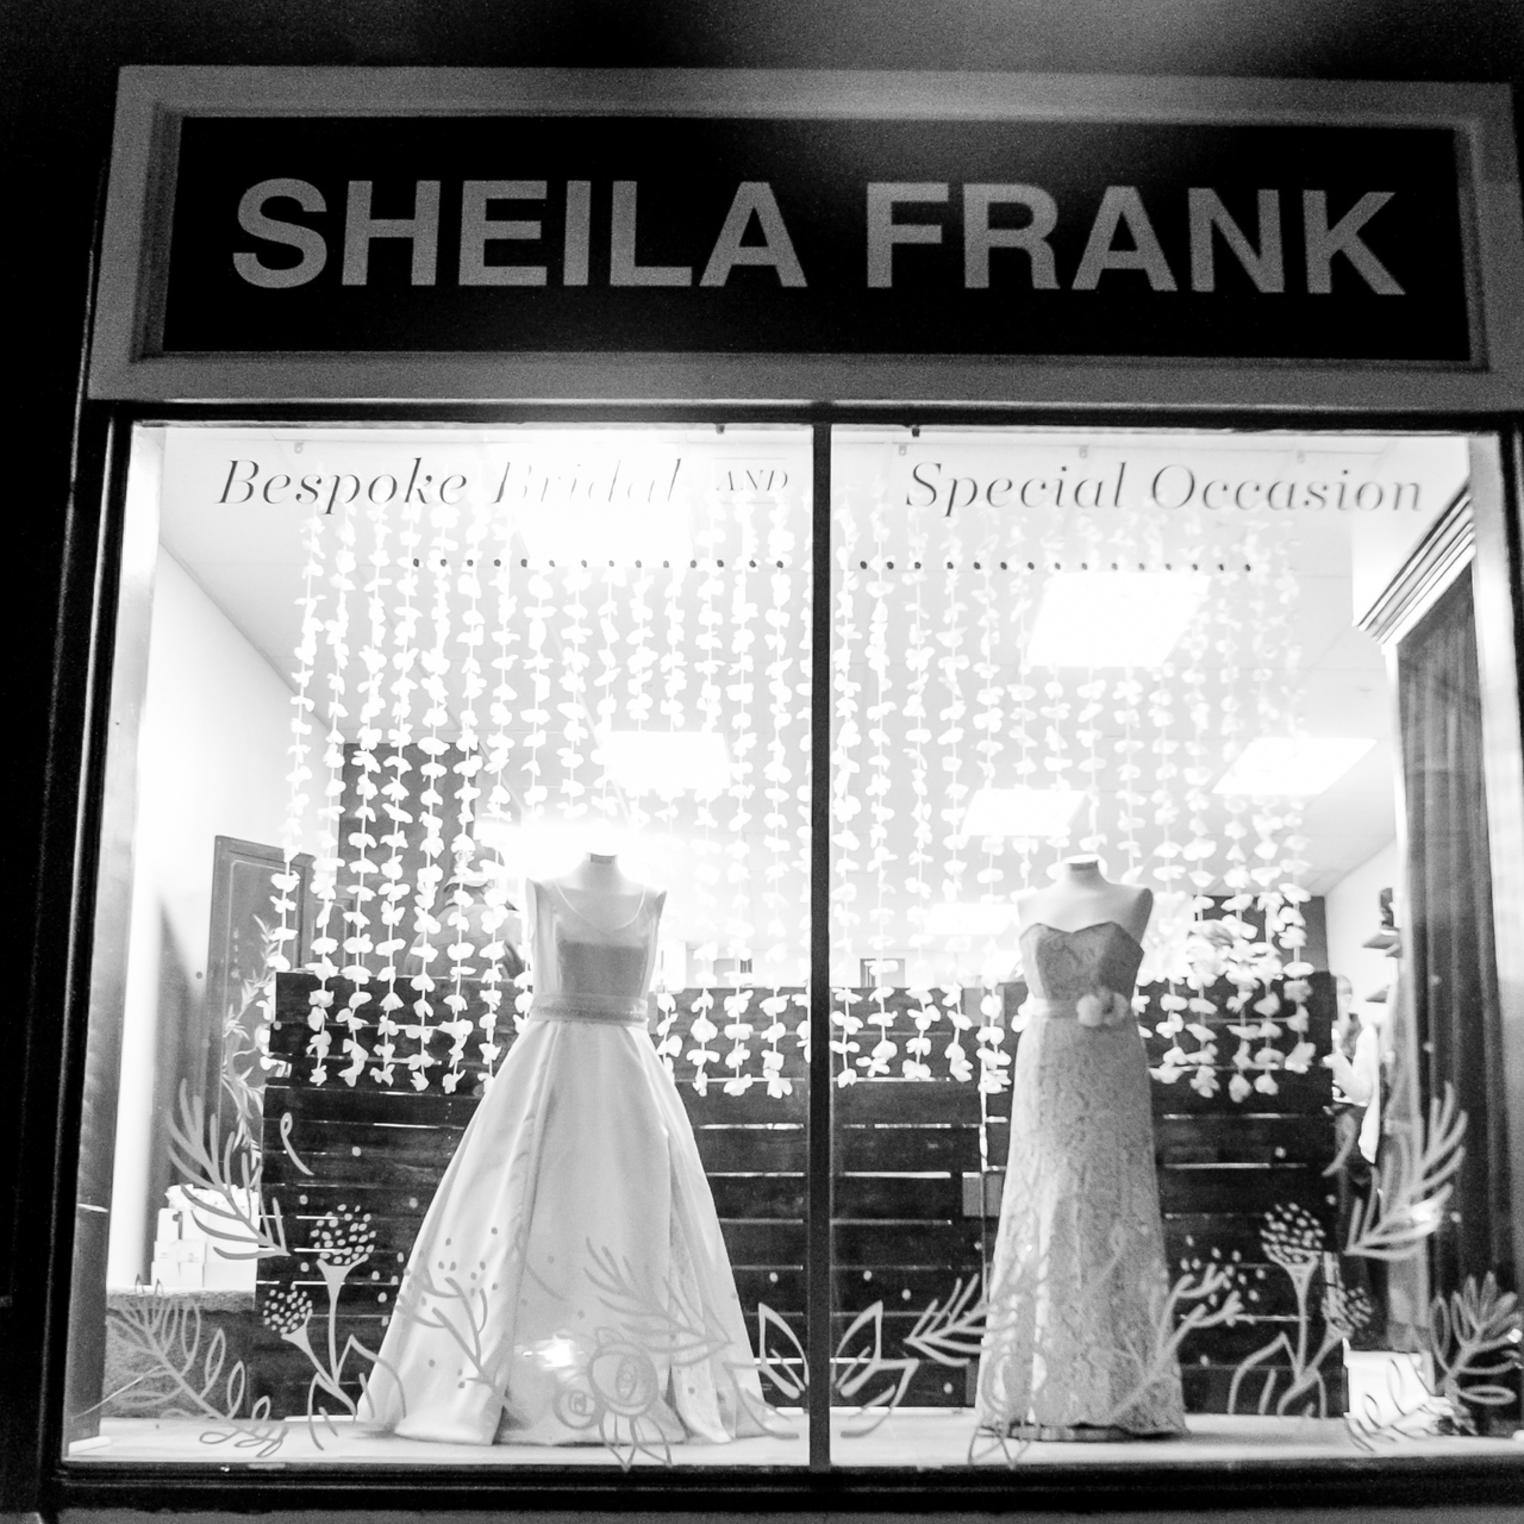 Sheila Frank Store Front